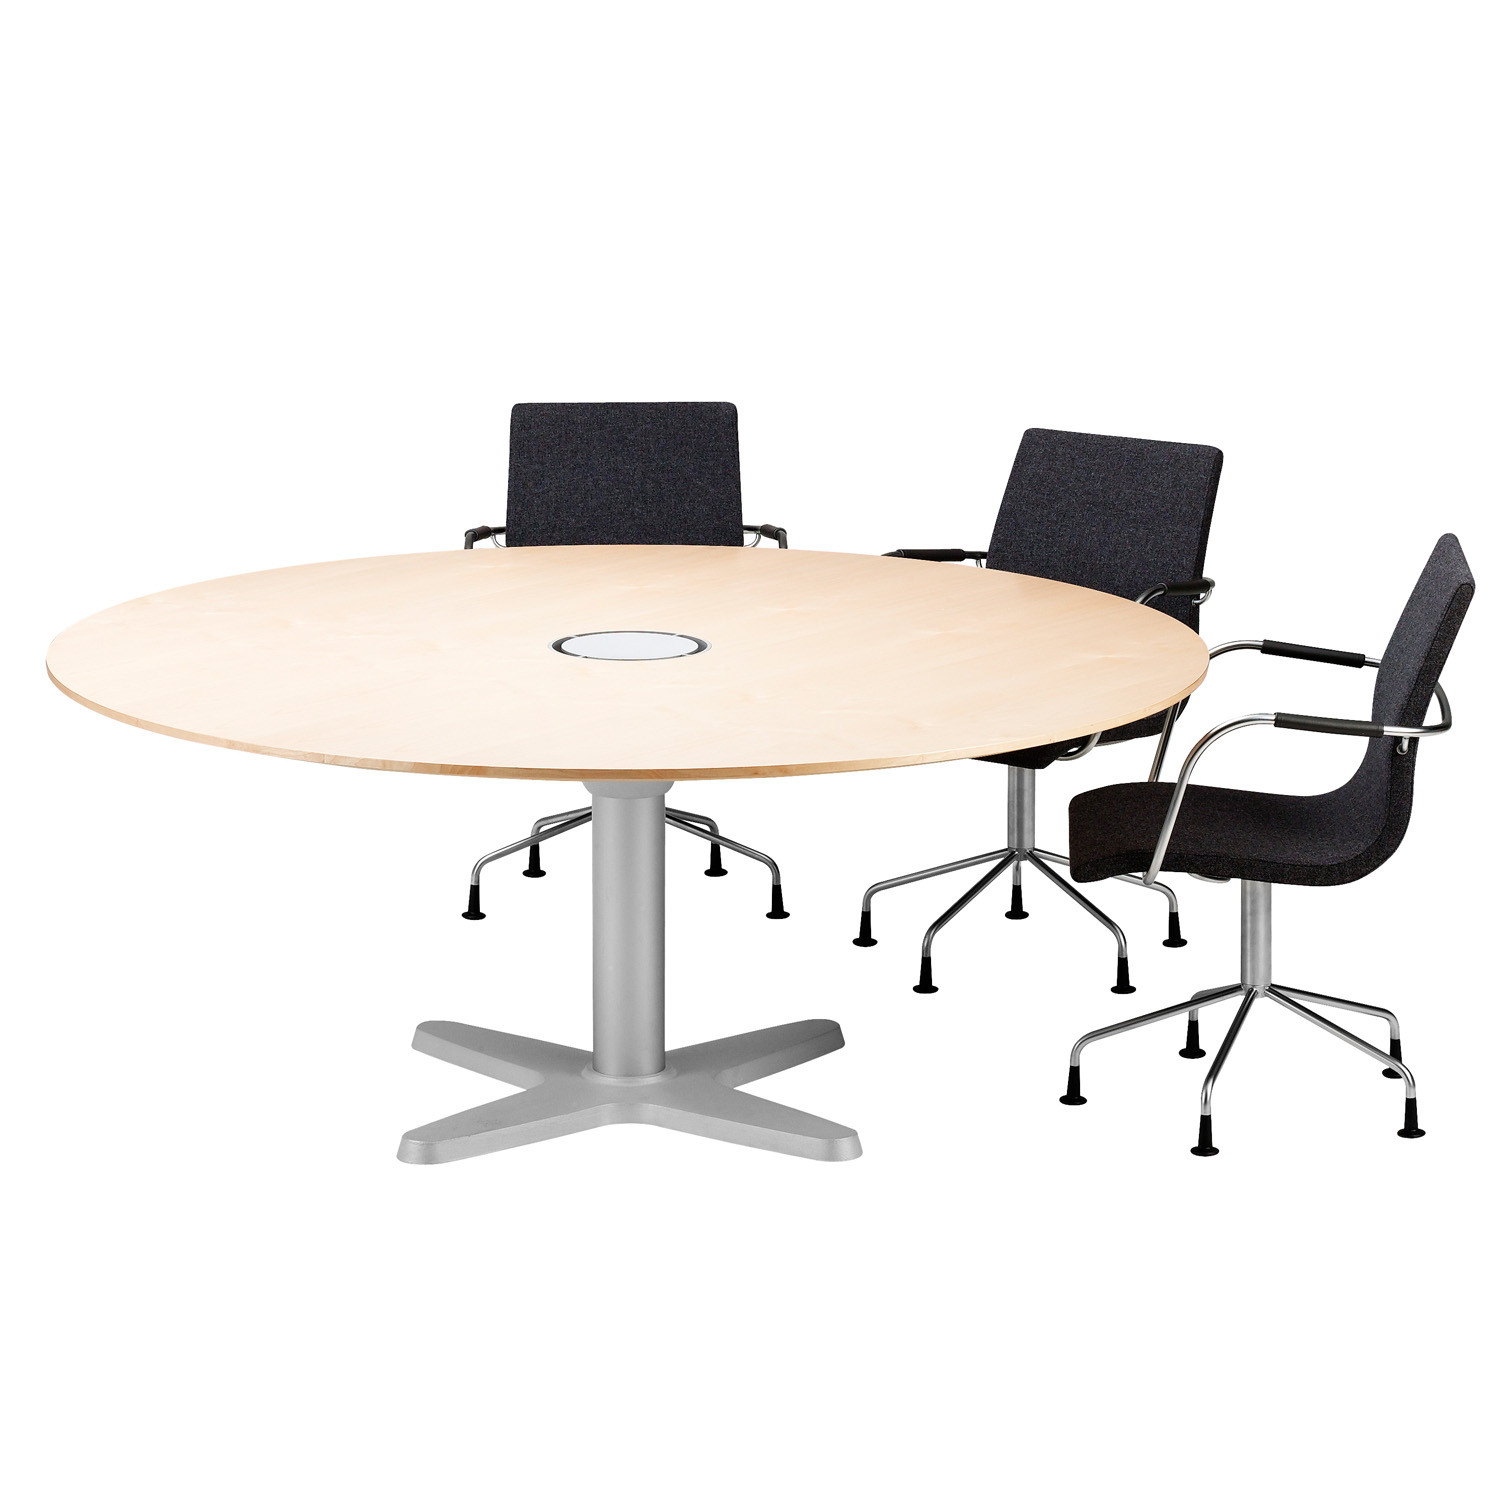 Atlas conference table round shape